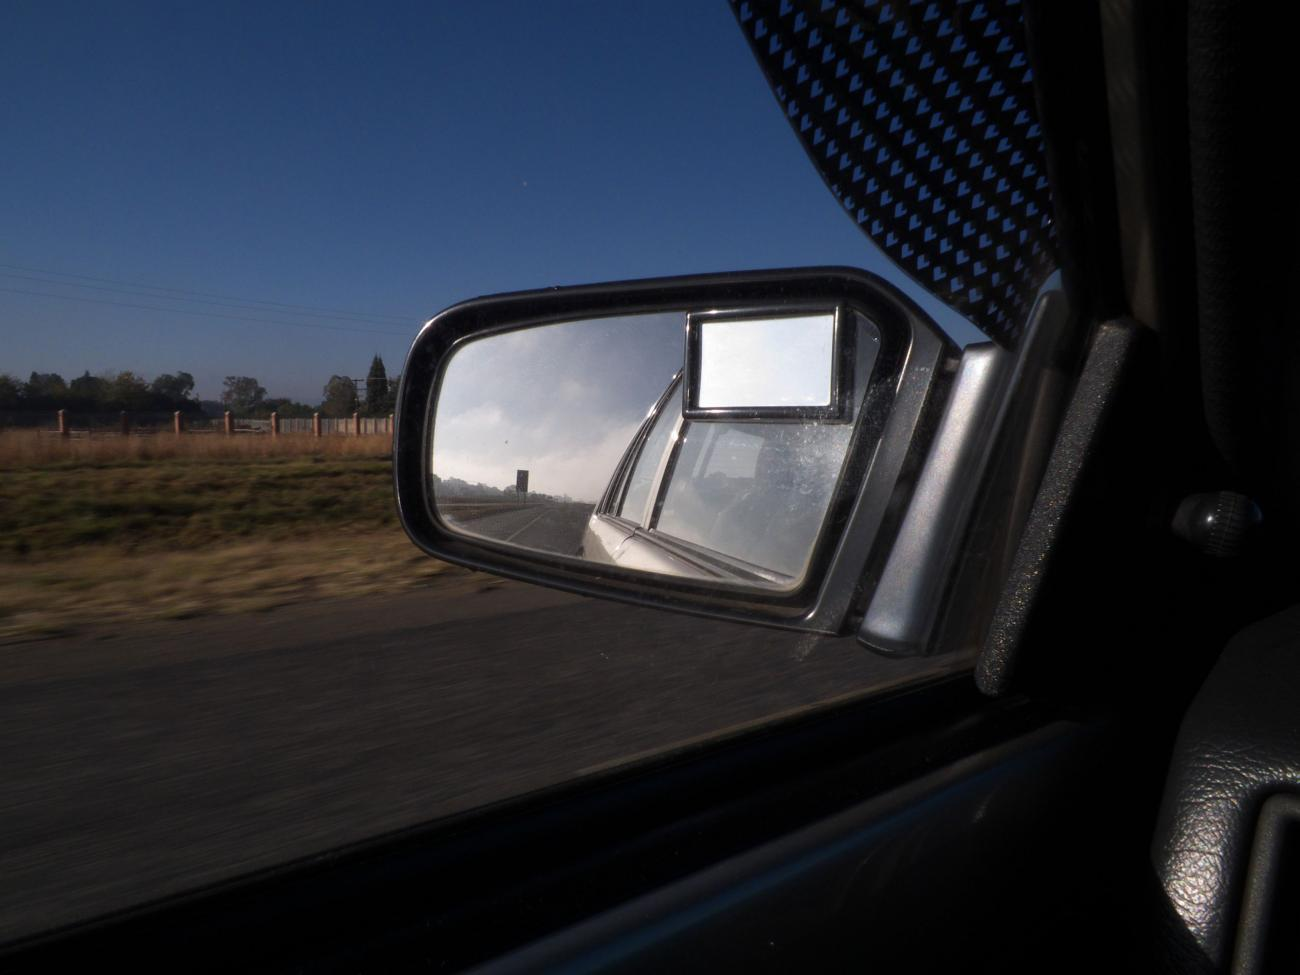 In the passangesr side mirror. by kgb224